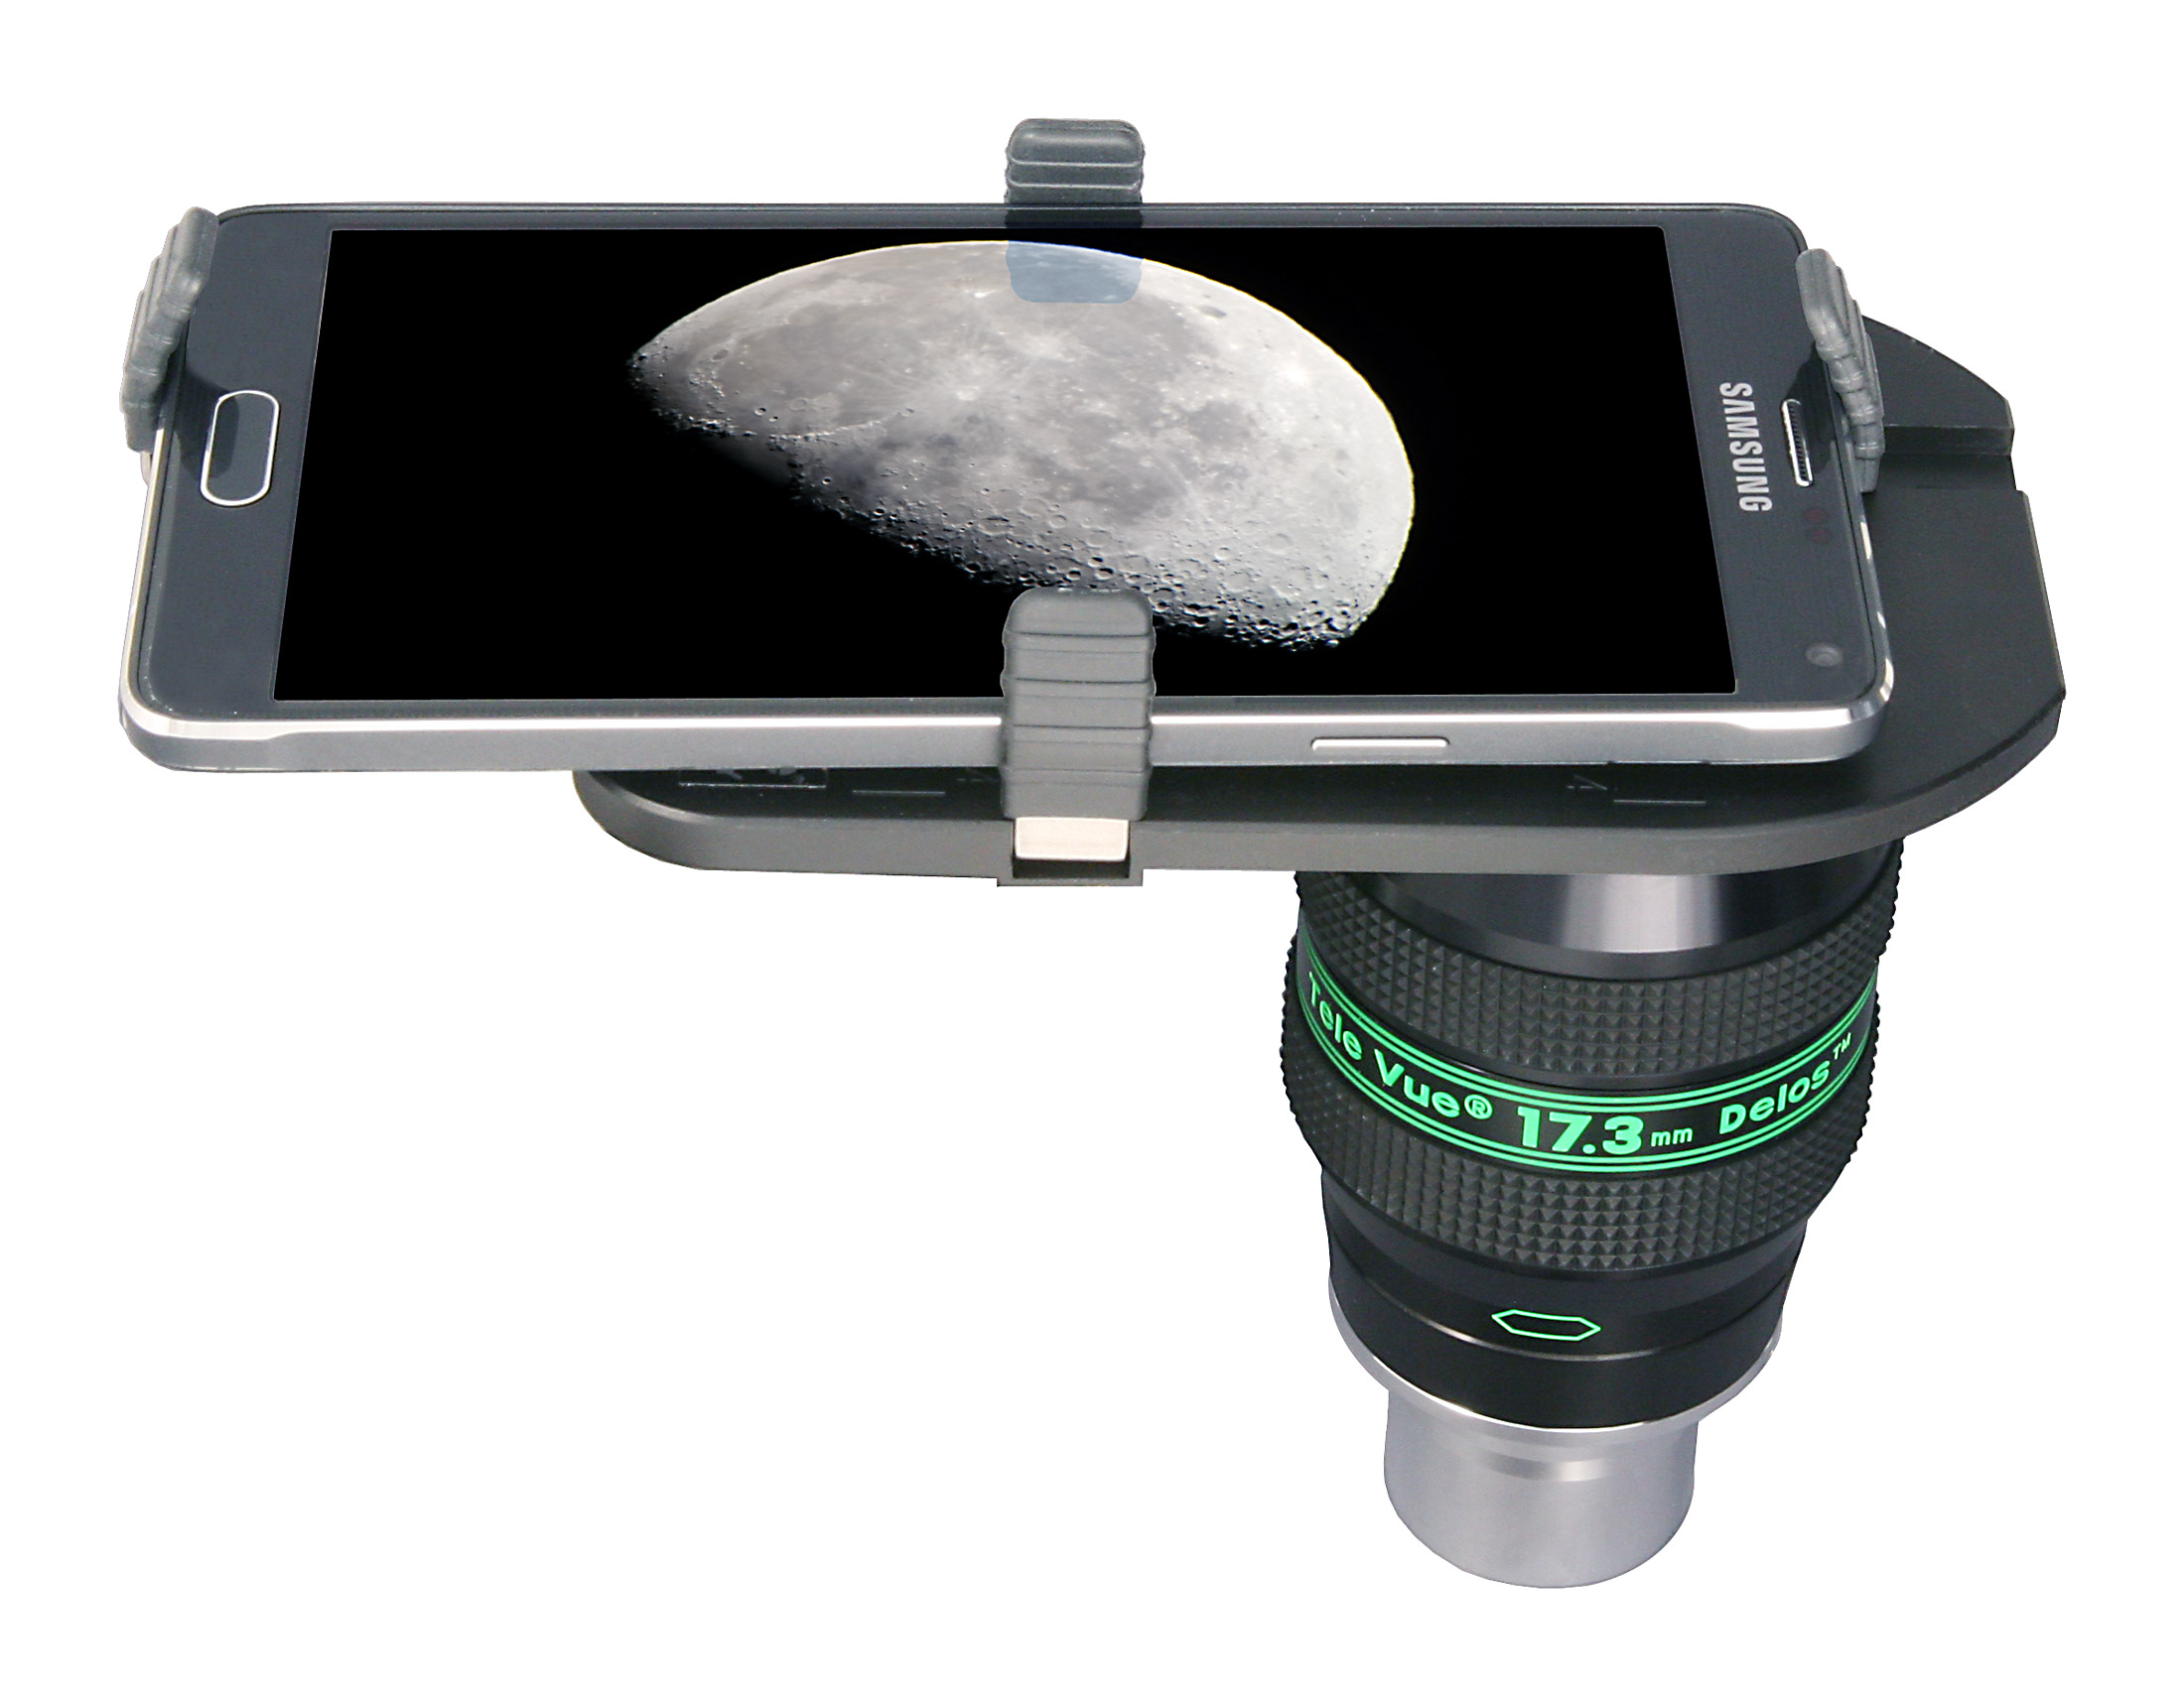 Tele Vue FoneMate™ Smart Phone Eyepiece Adapter